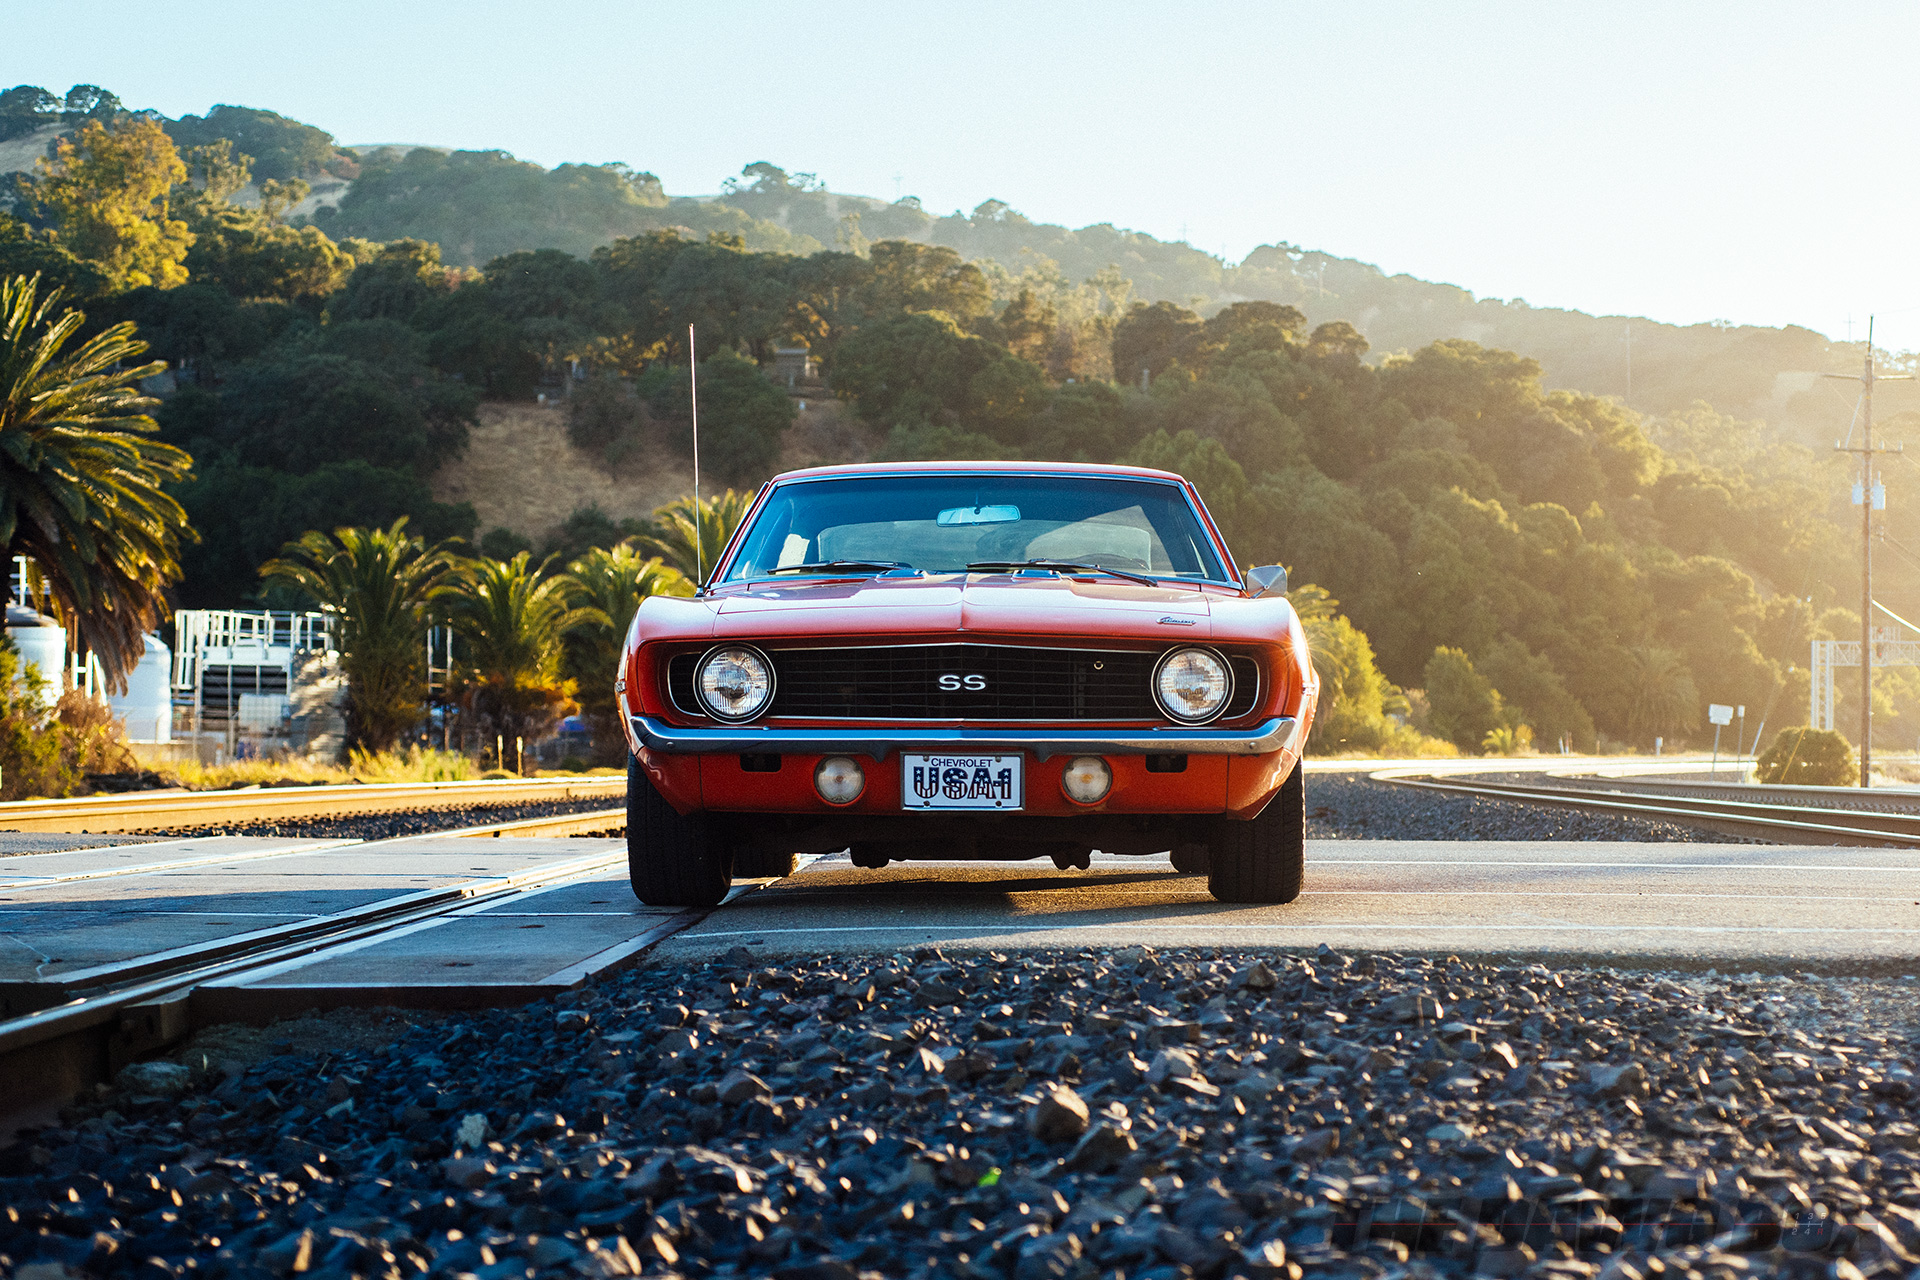 Front shot of Curt Hill's '69 Chevrolet Camaro SS